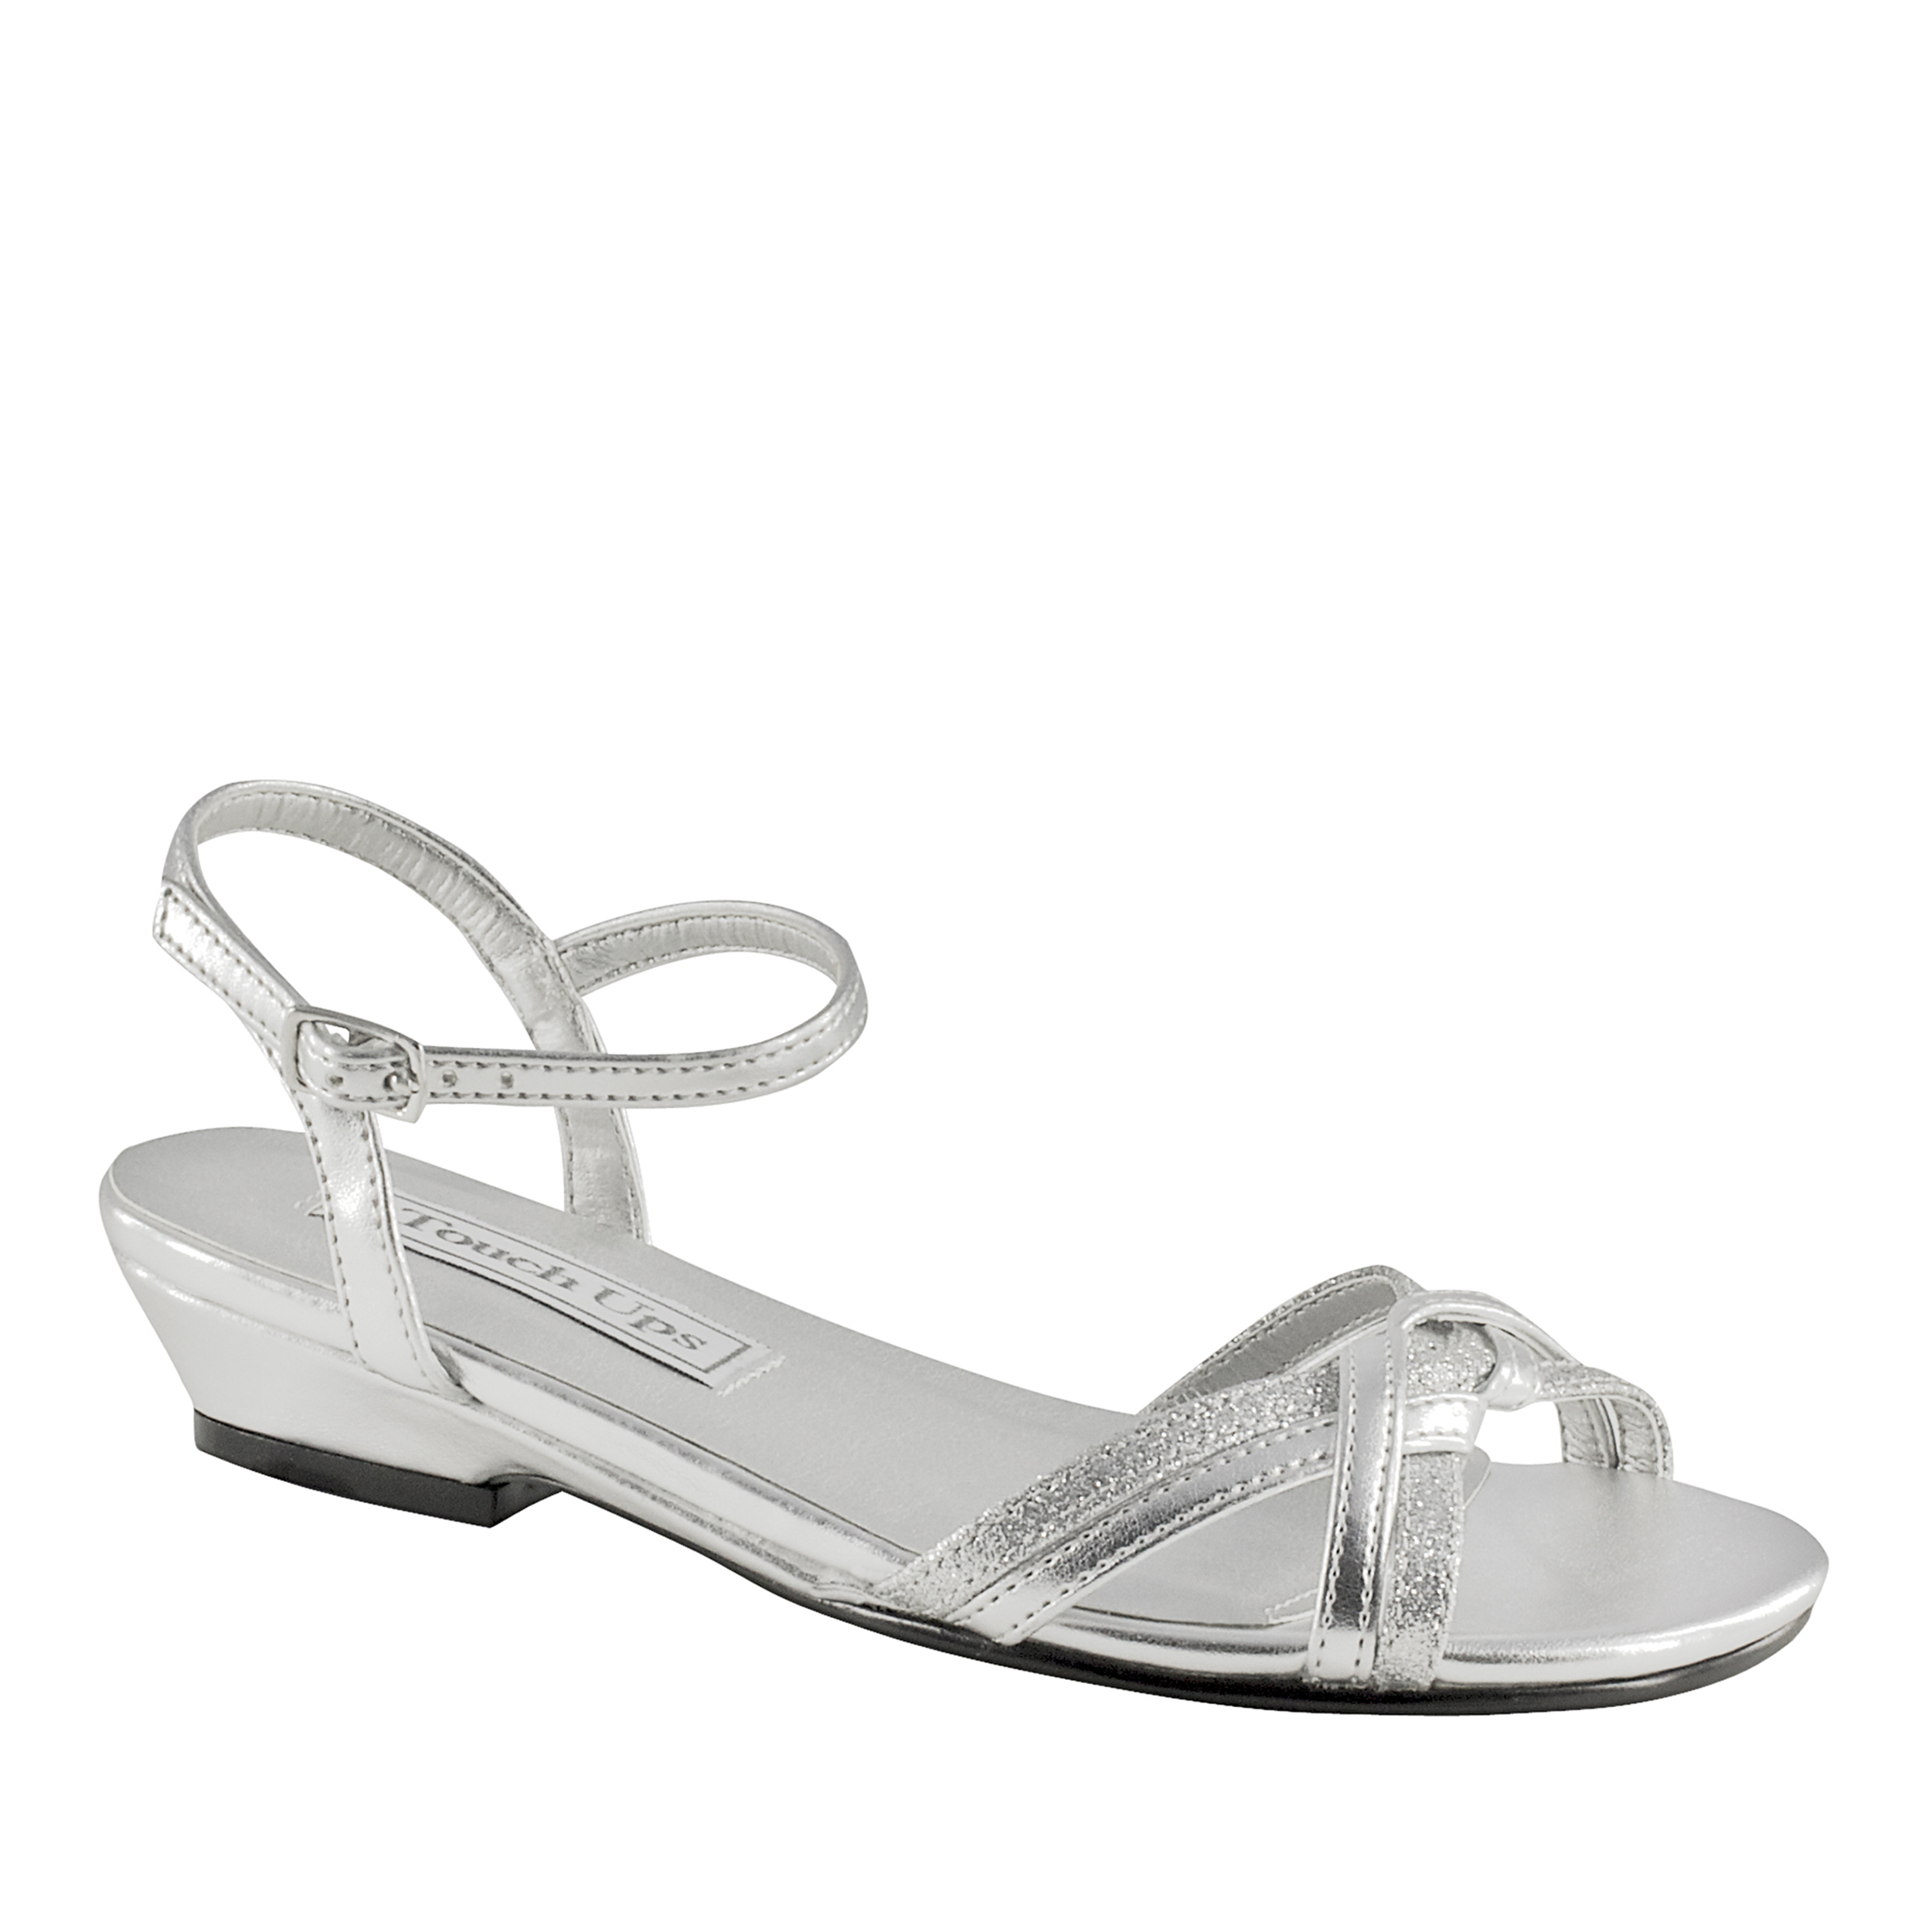 Touch Ups 156MO Melanie Jr. Silver Synthetic Womens Sandal, Silver, 10 M US Toddler